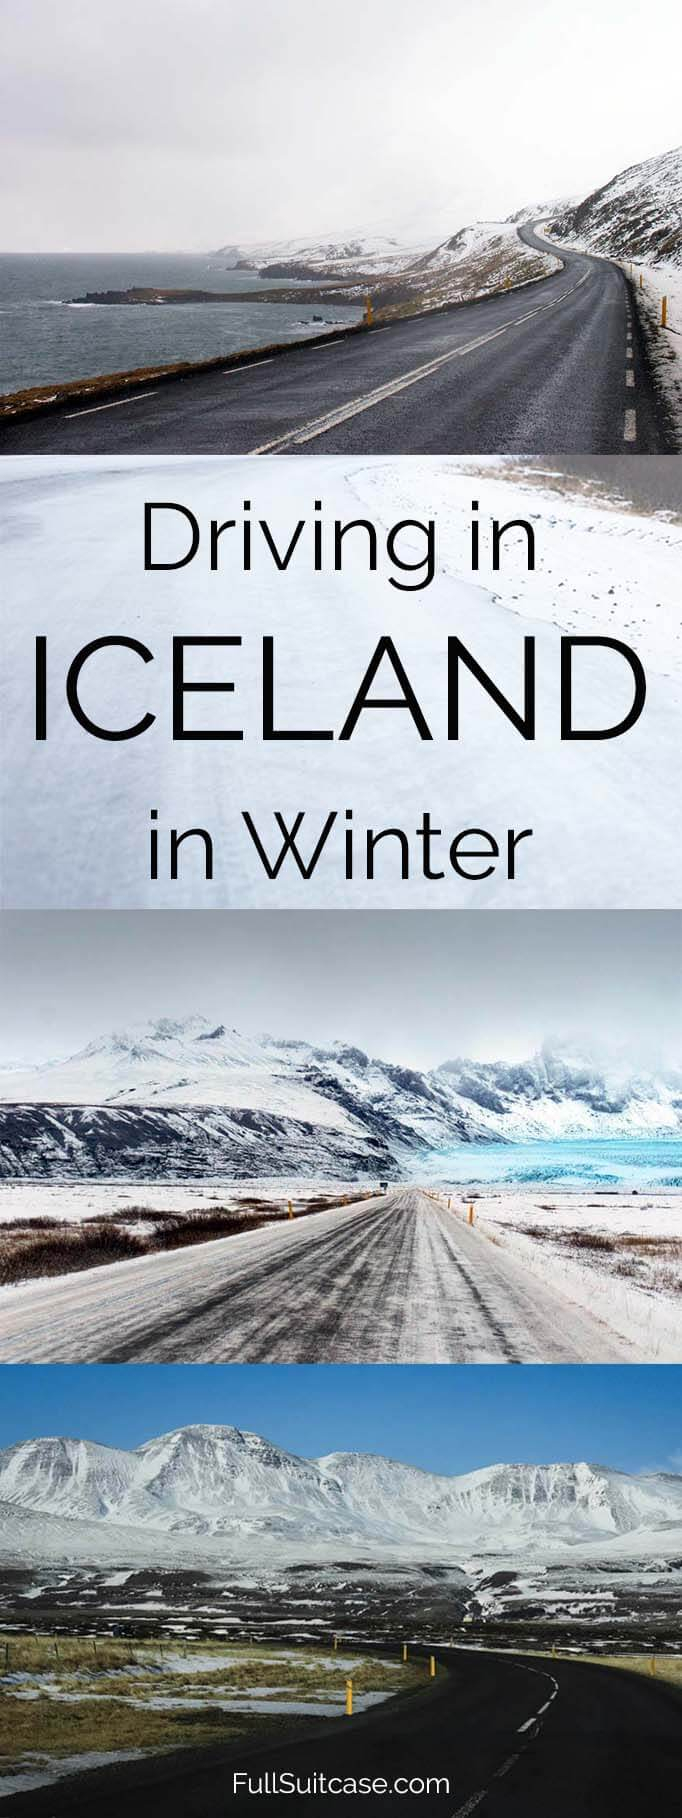 Driving in Iceland in winter months - along the Ring Road from October through April #Iceland